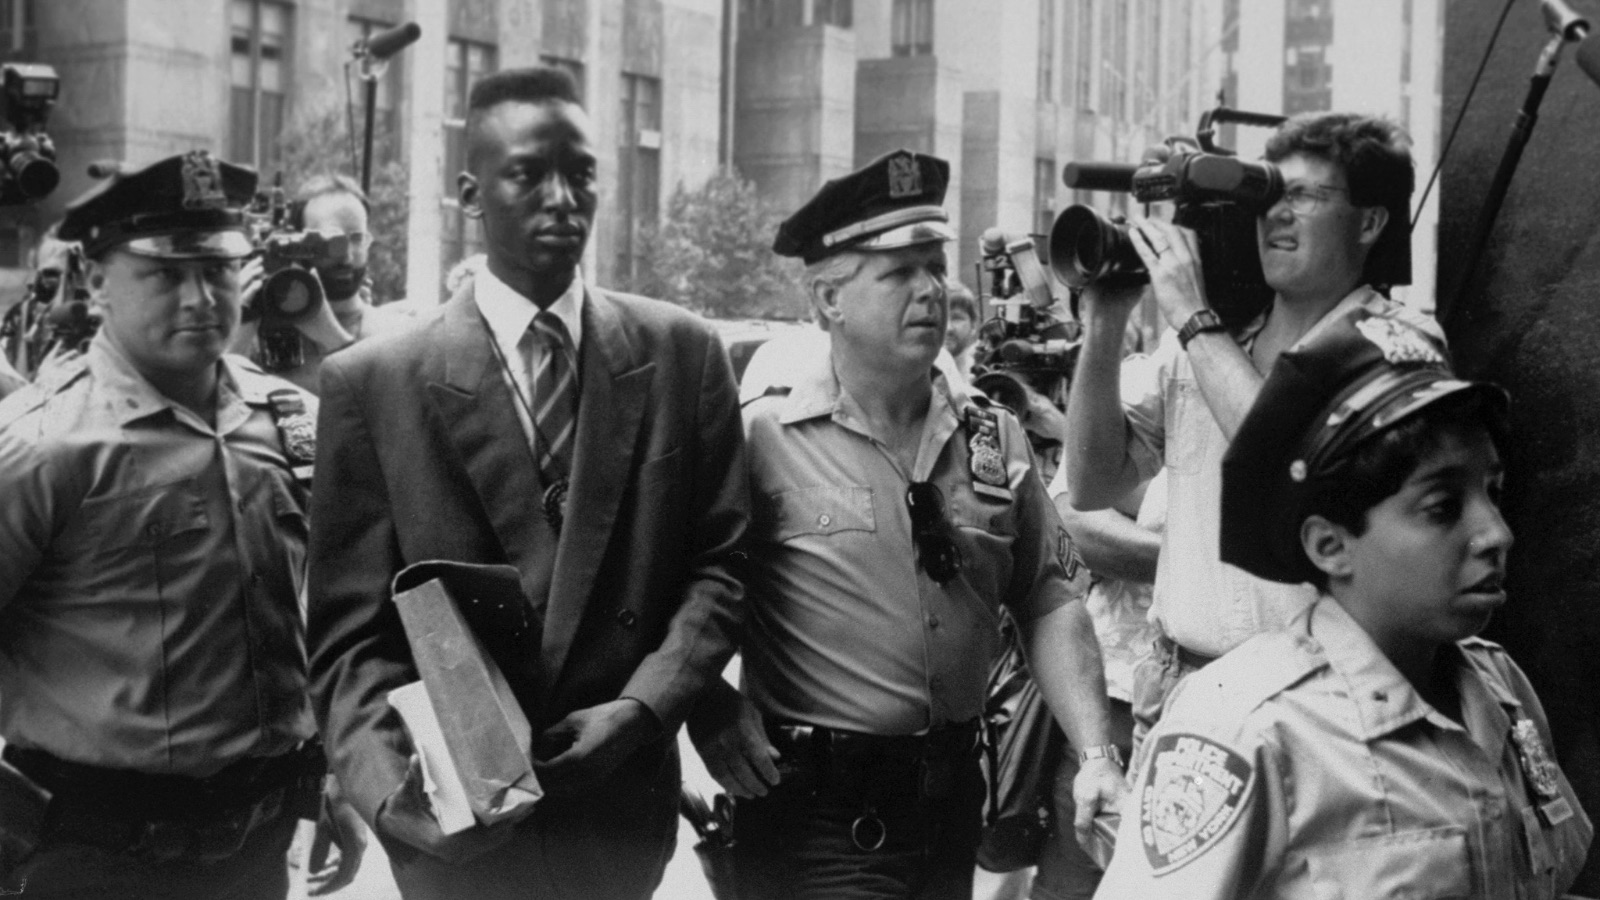 film still from The Central Park Five (2012)